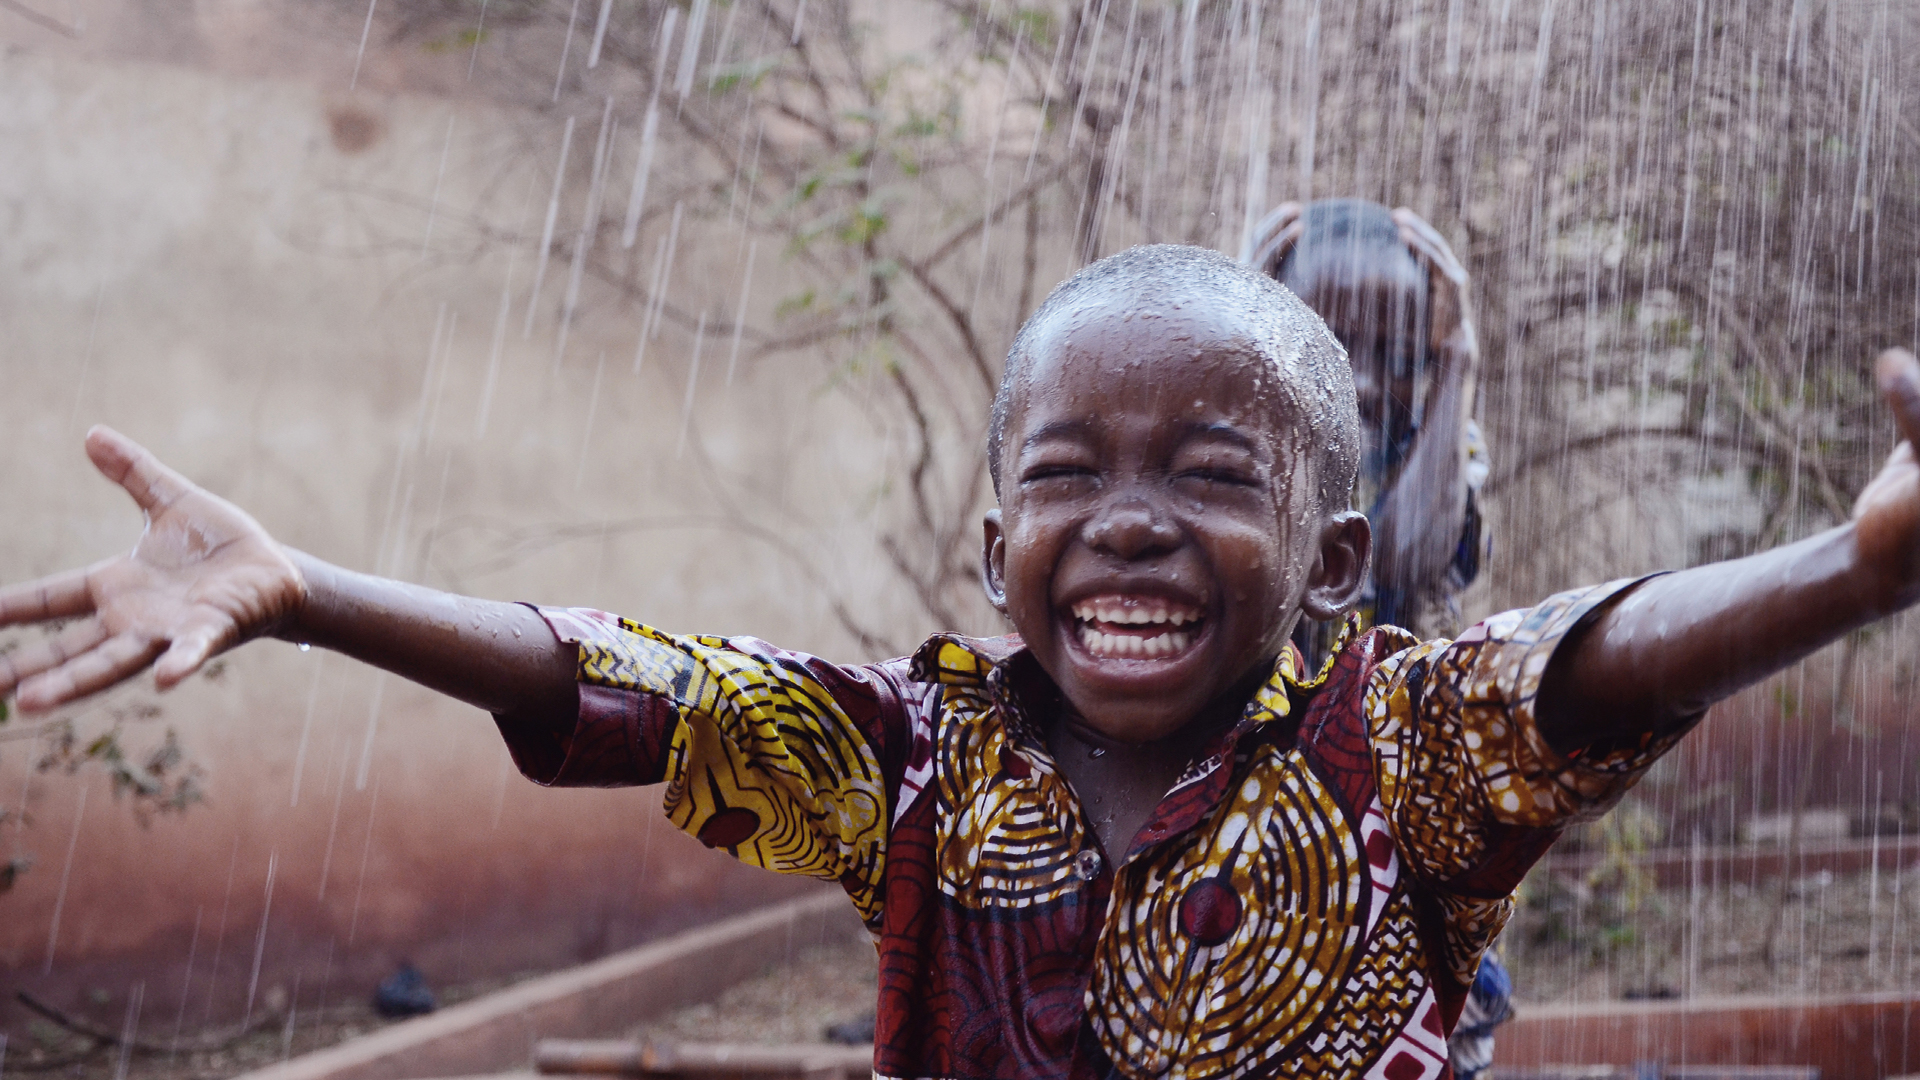 Africa is blessed not cursed! Small African boy grinning in the rain